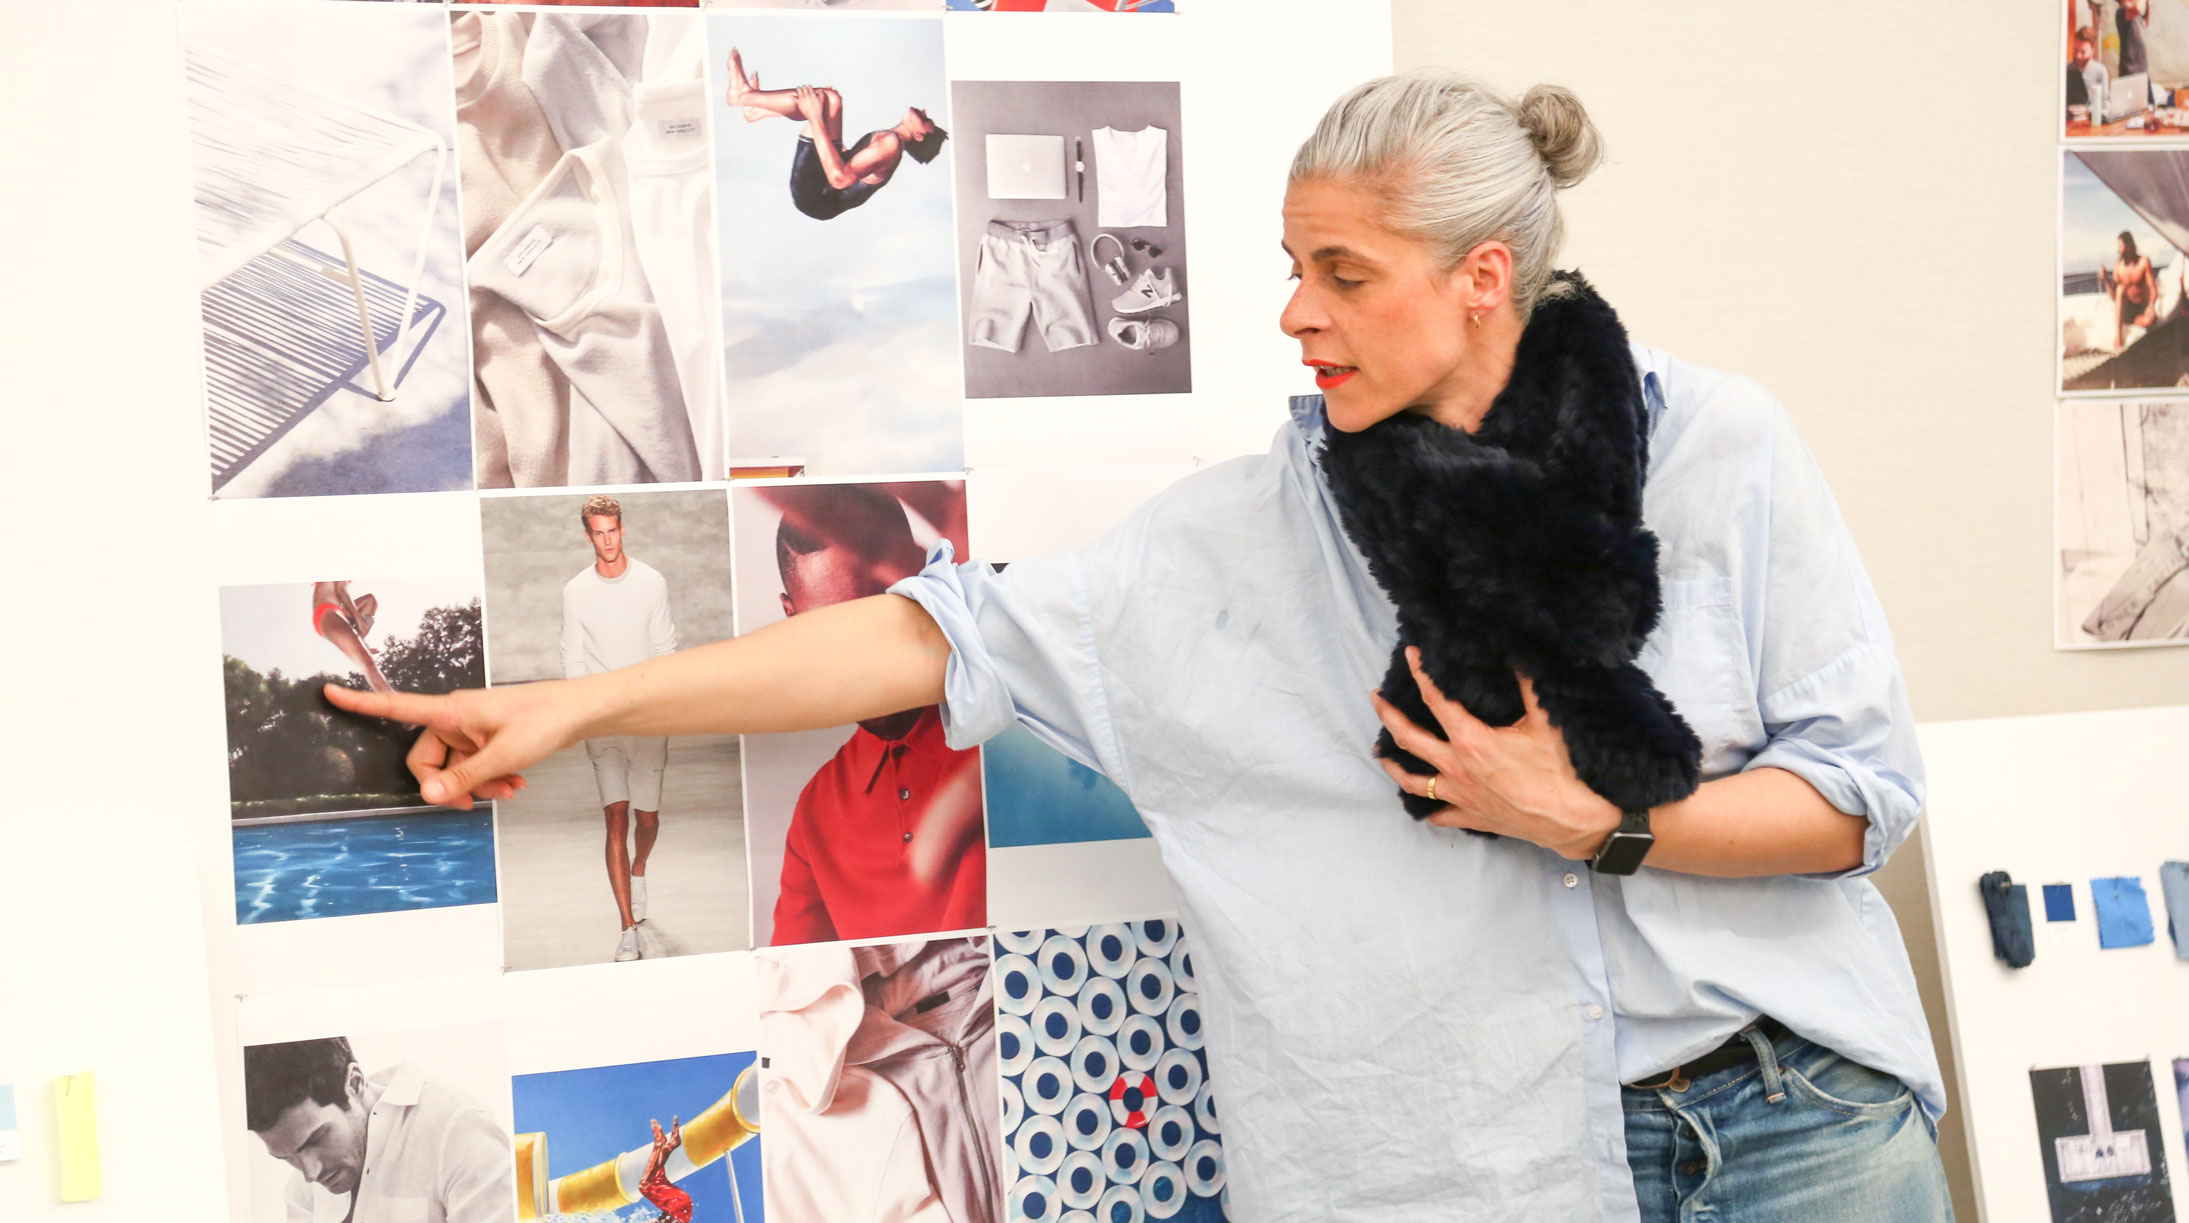 Head of Men's Design at BR walks us through mood boards